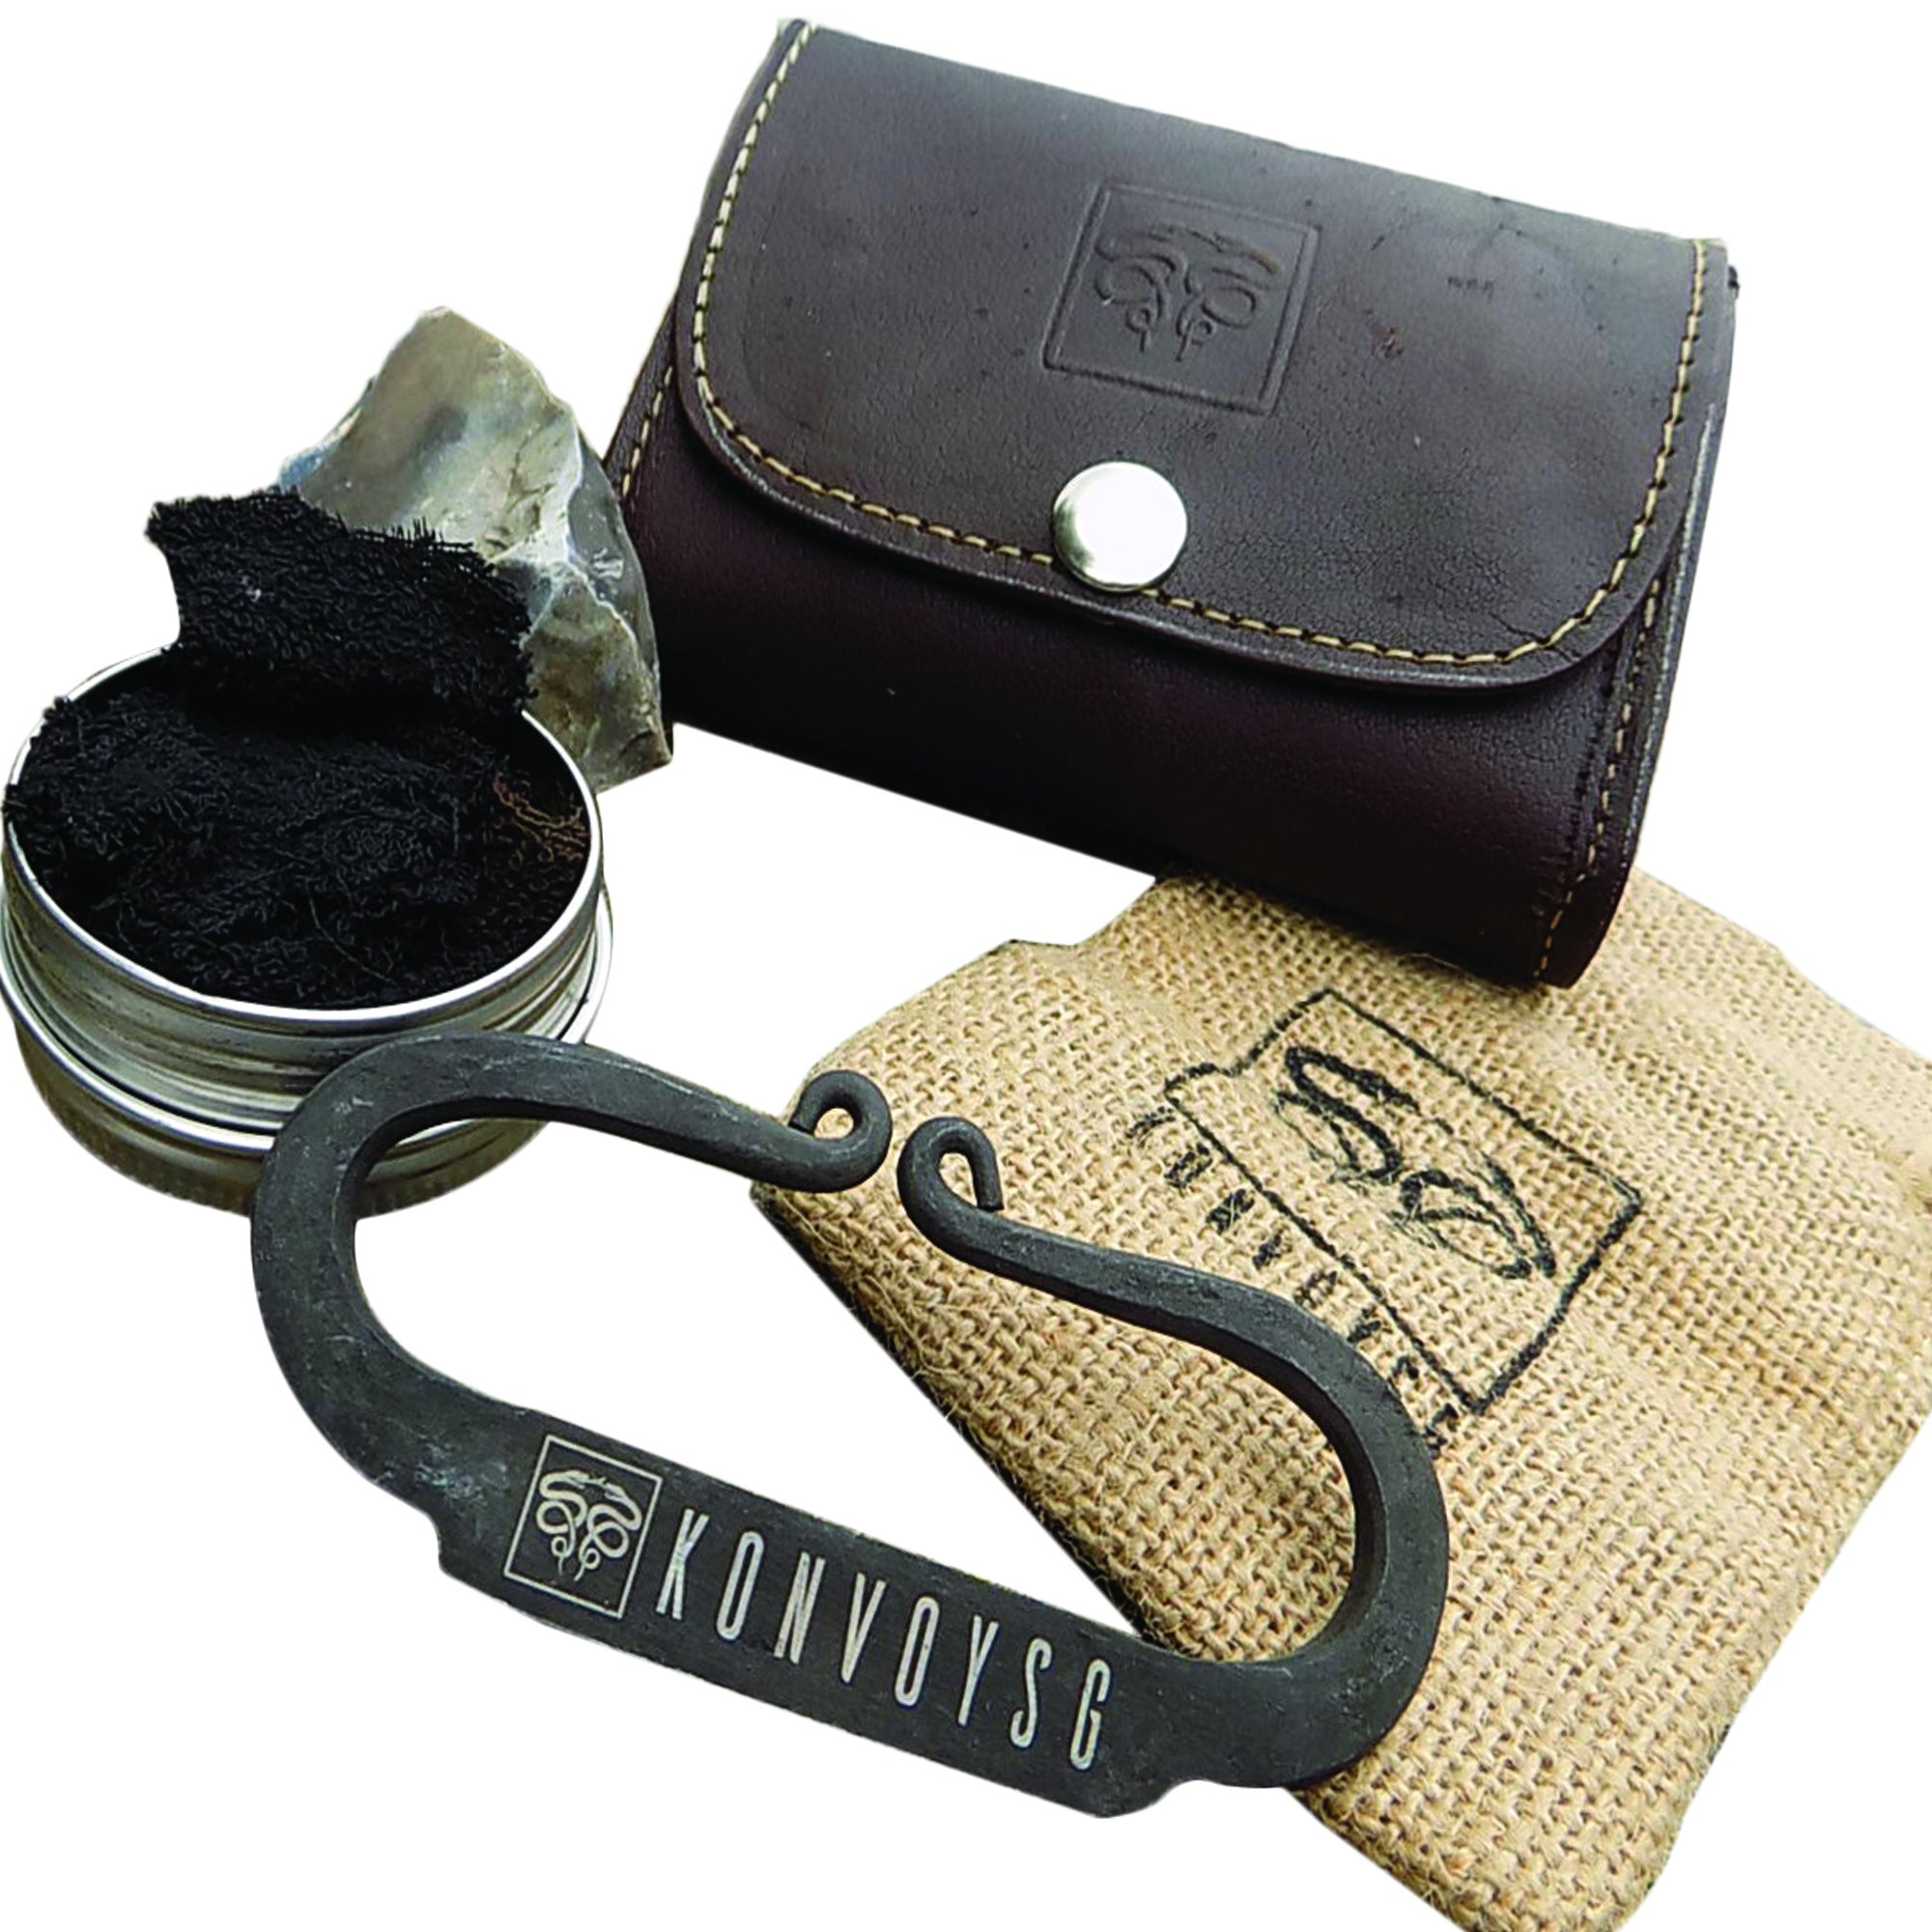 KonvoySG Carbon Steel Fire Striker, English Flint Stone & Char cloth Traditional Hand Forged Fire Starter, Leather Gift Kit With Emergency Tinder Jute Bag (COGNAC)